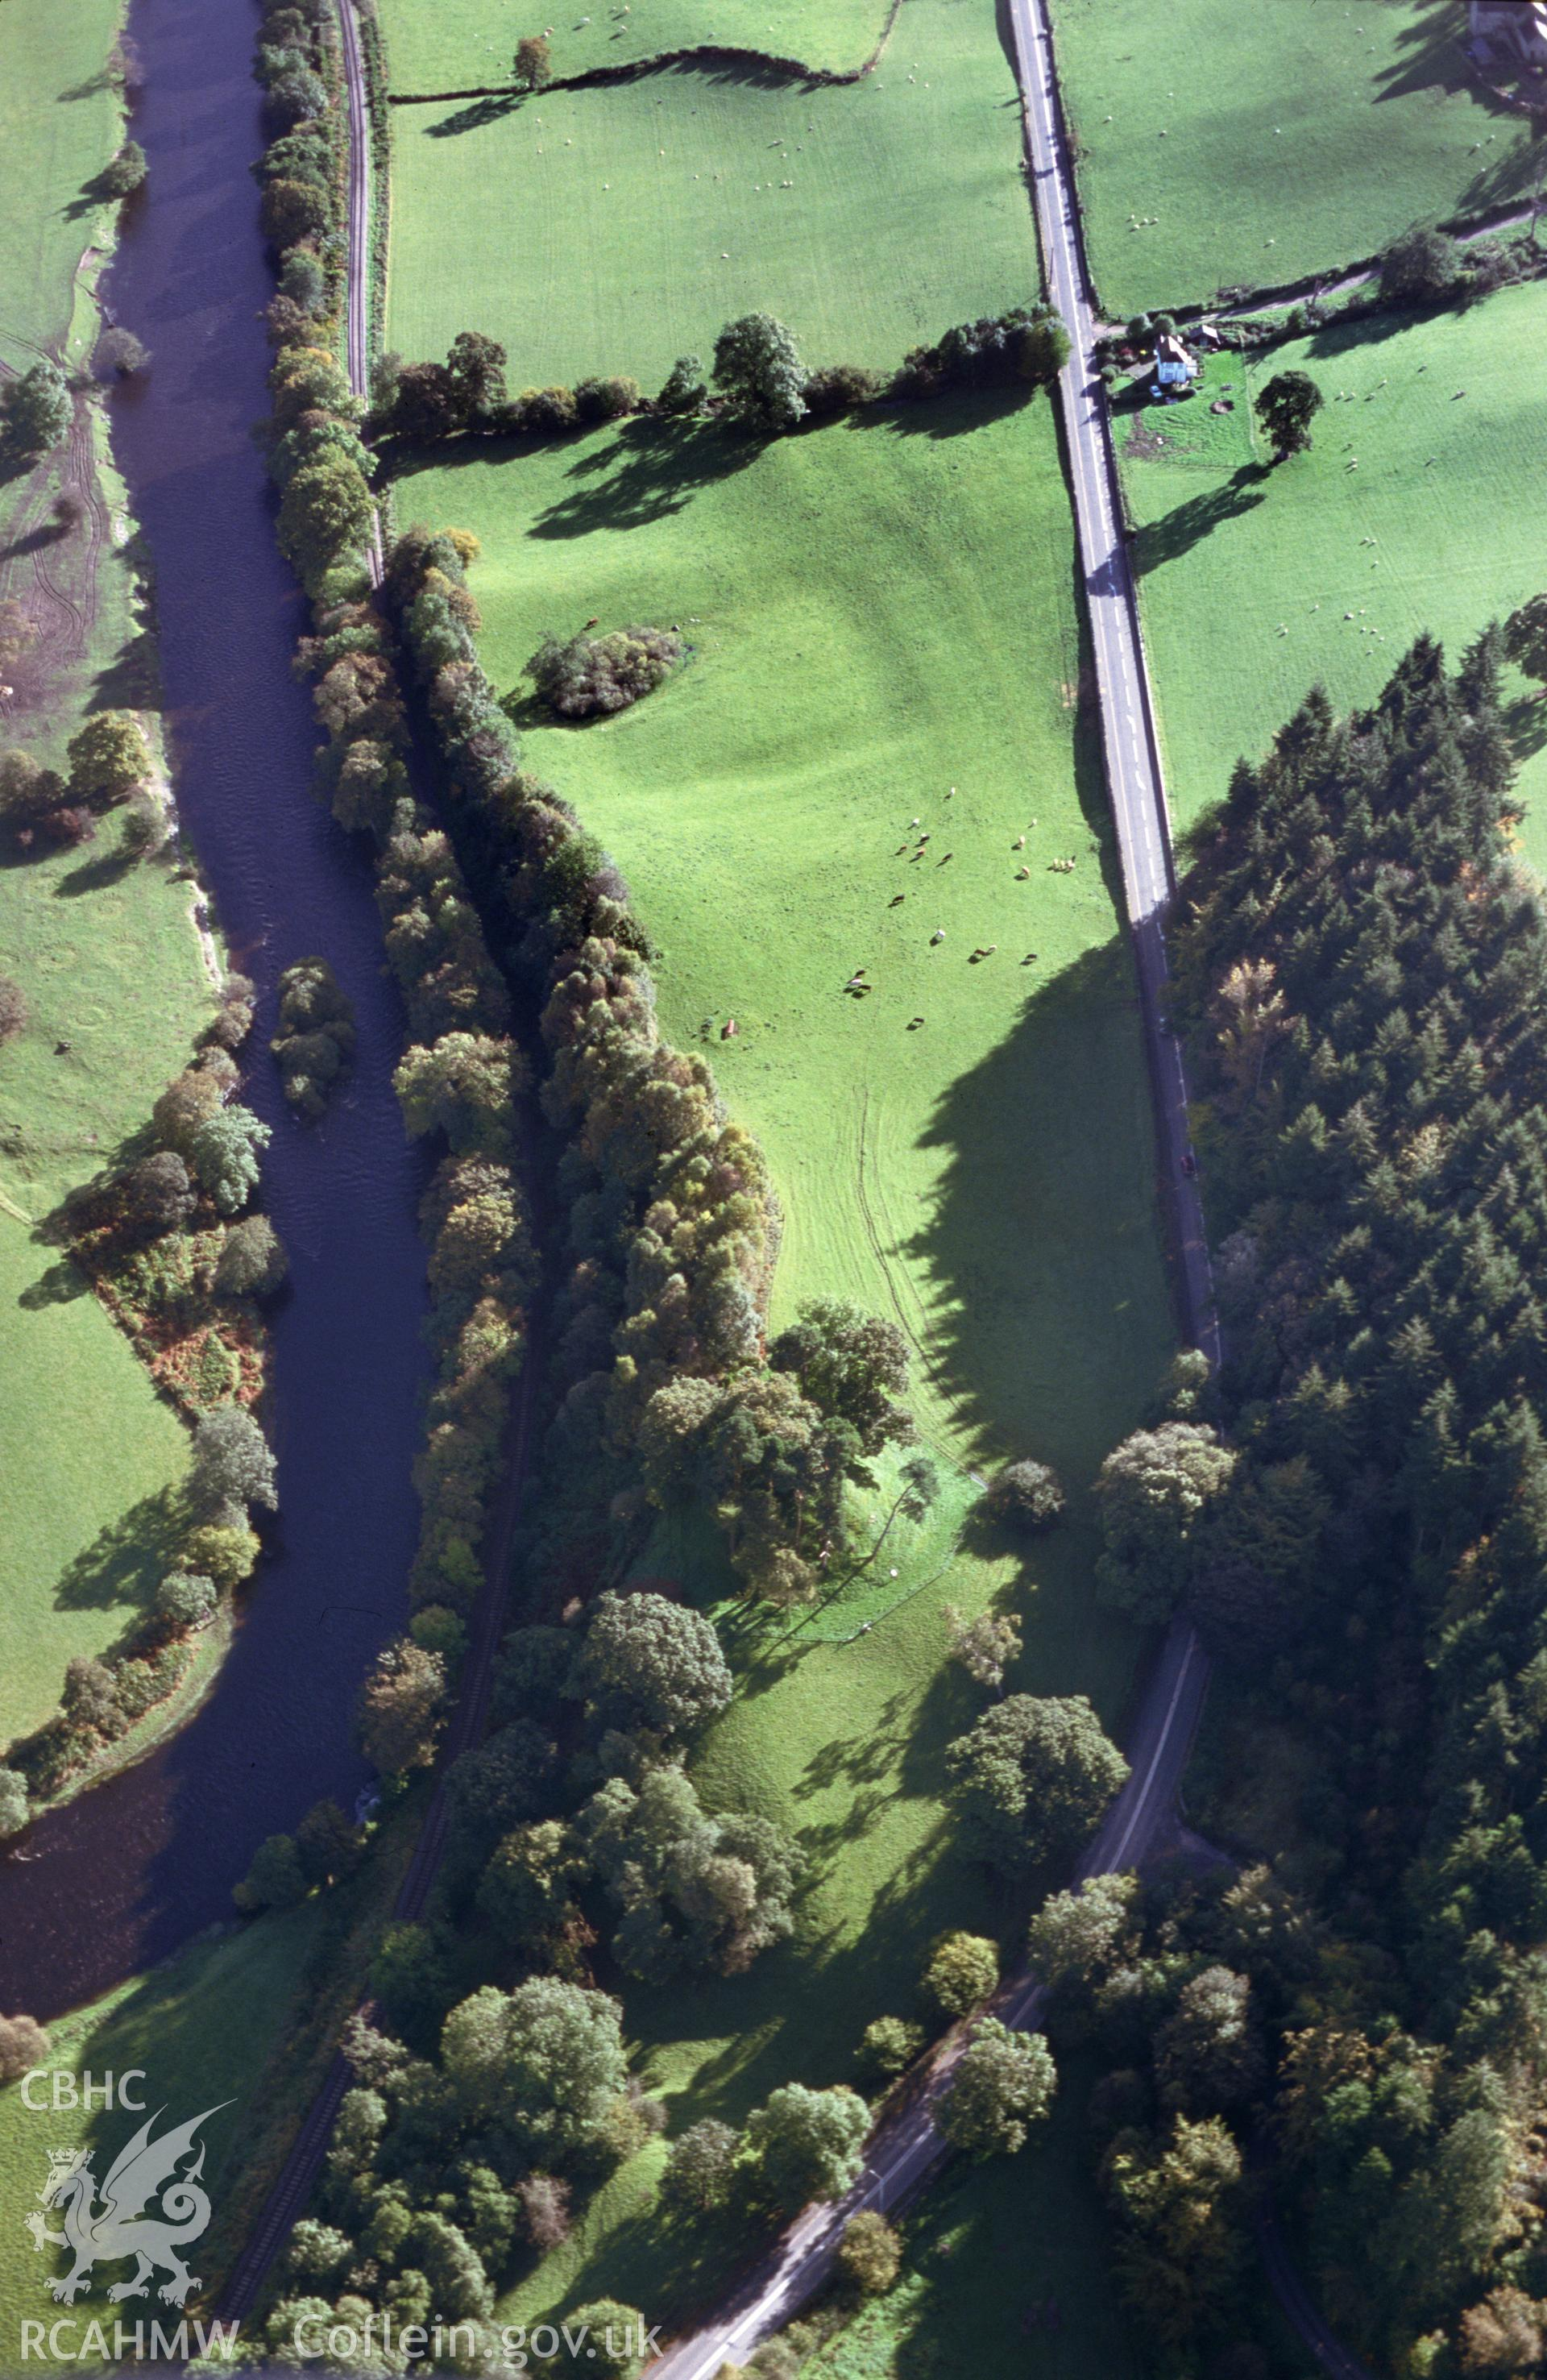 Slide of RCAHMW colour oblique aerial photograph of Owain Glyndwr's Mound, Motte, taken by T.G. Driver, 17/10/2000.